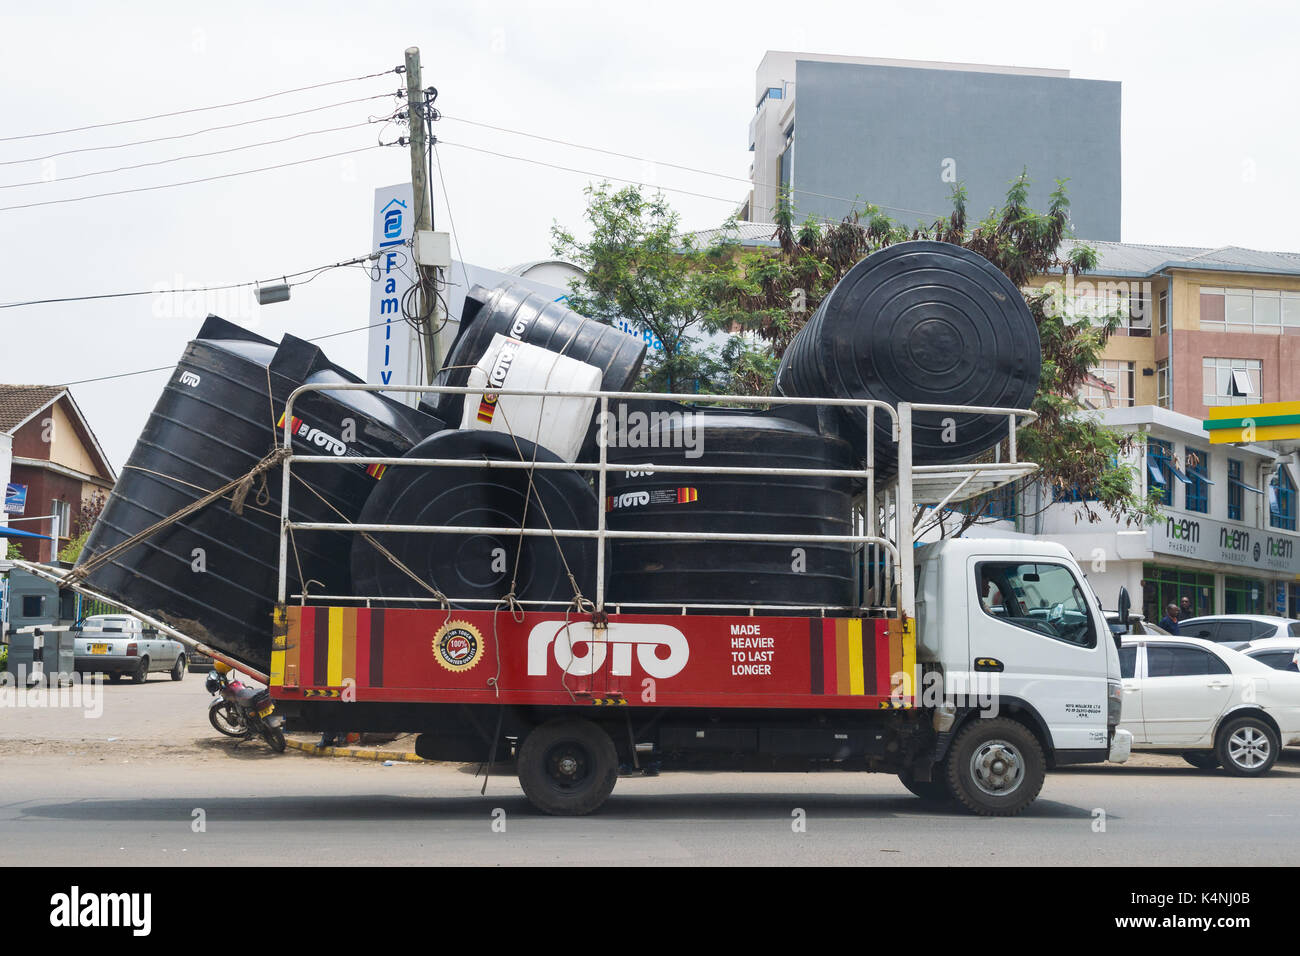 Truck carrying high capacity water tanks for delivery, Nairobi